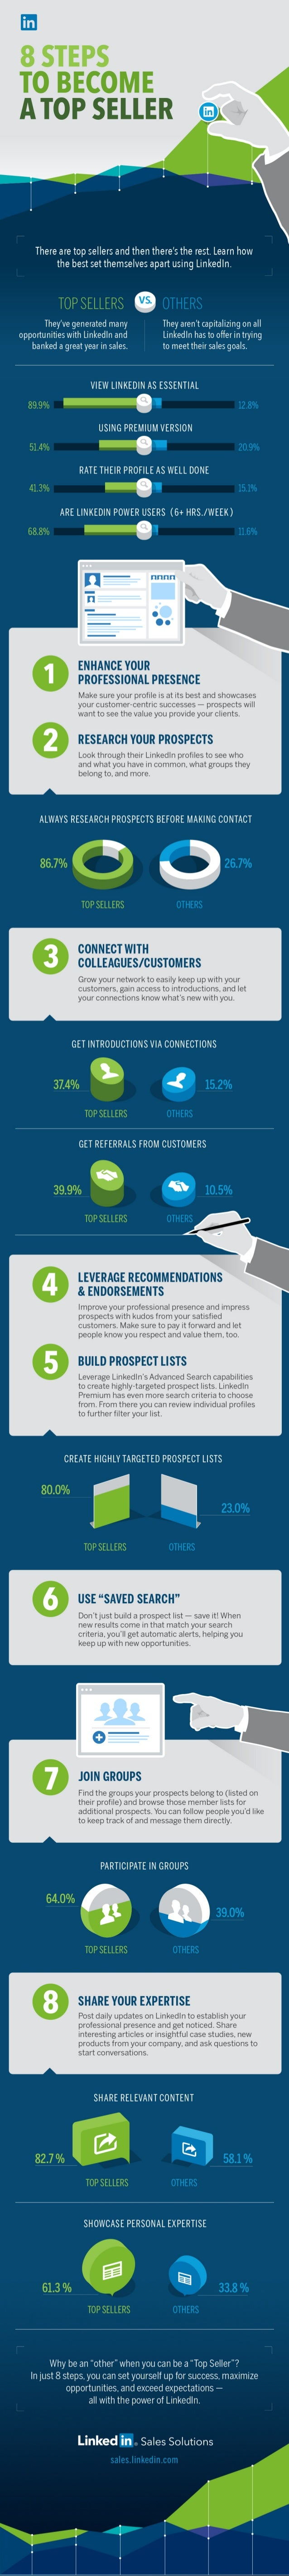 8 Steps To Become A Top Seller On LinkedIn